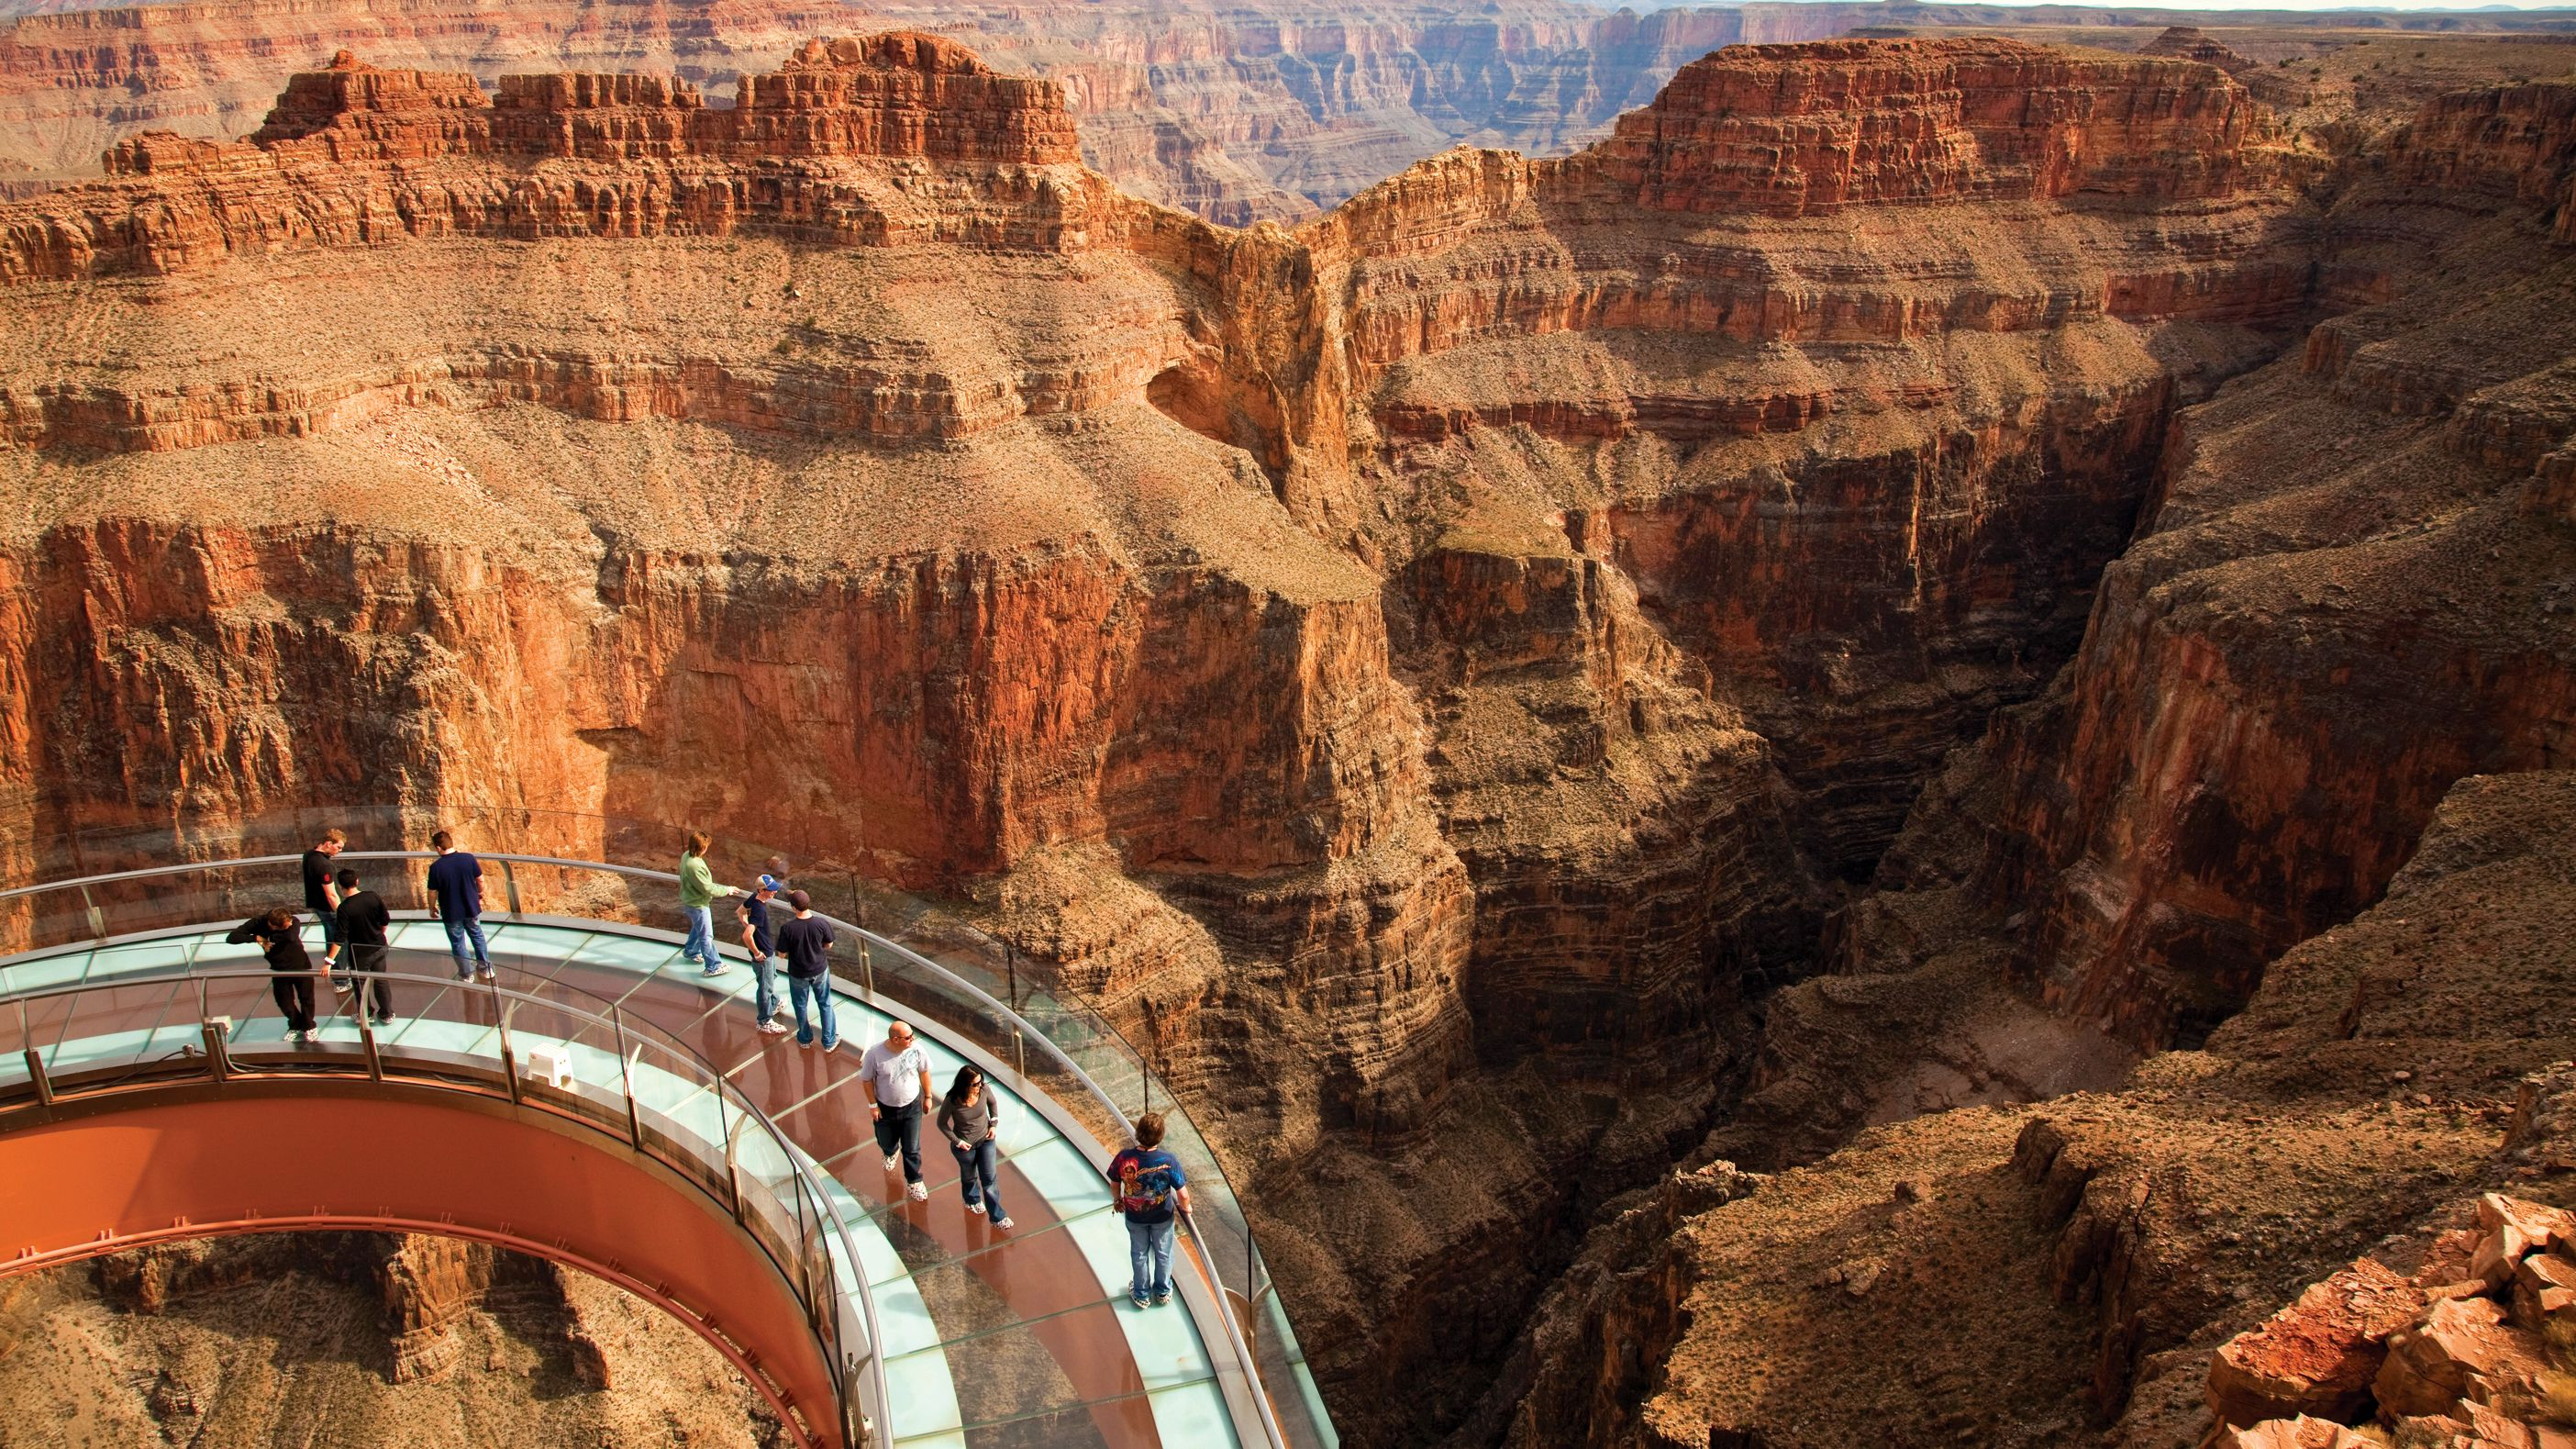 Helikoptertour door de Grand Canyon met VIP-toegang tot de Skywalk